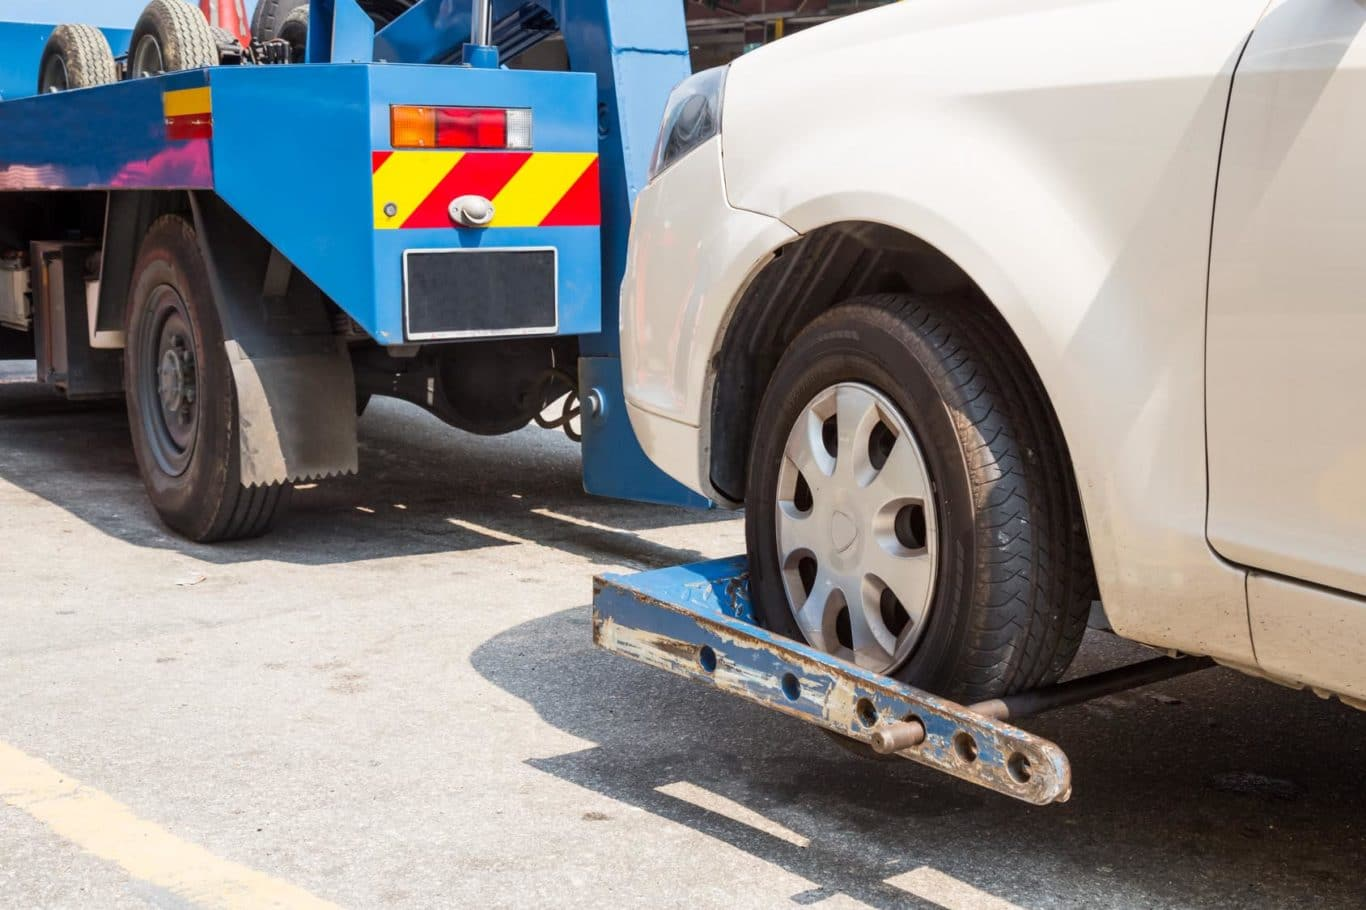 Grangecon expert Roadside Assistance services